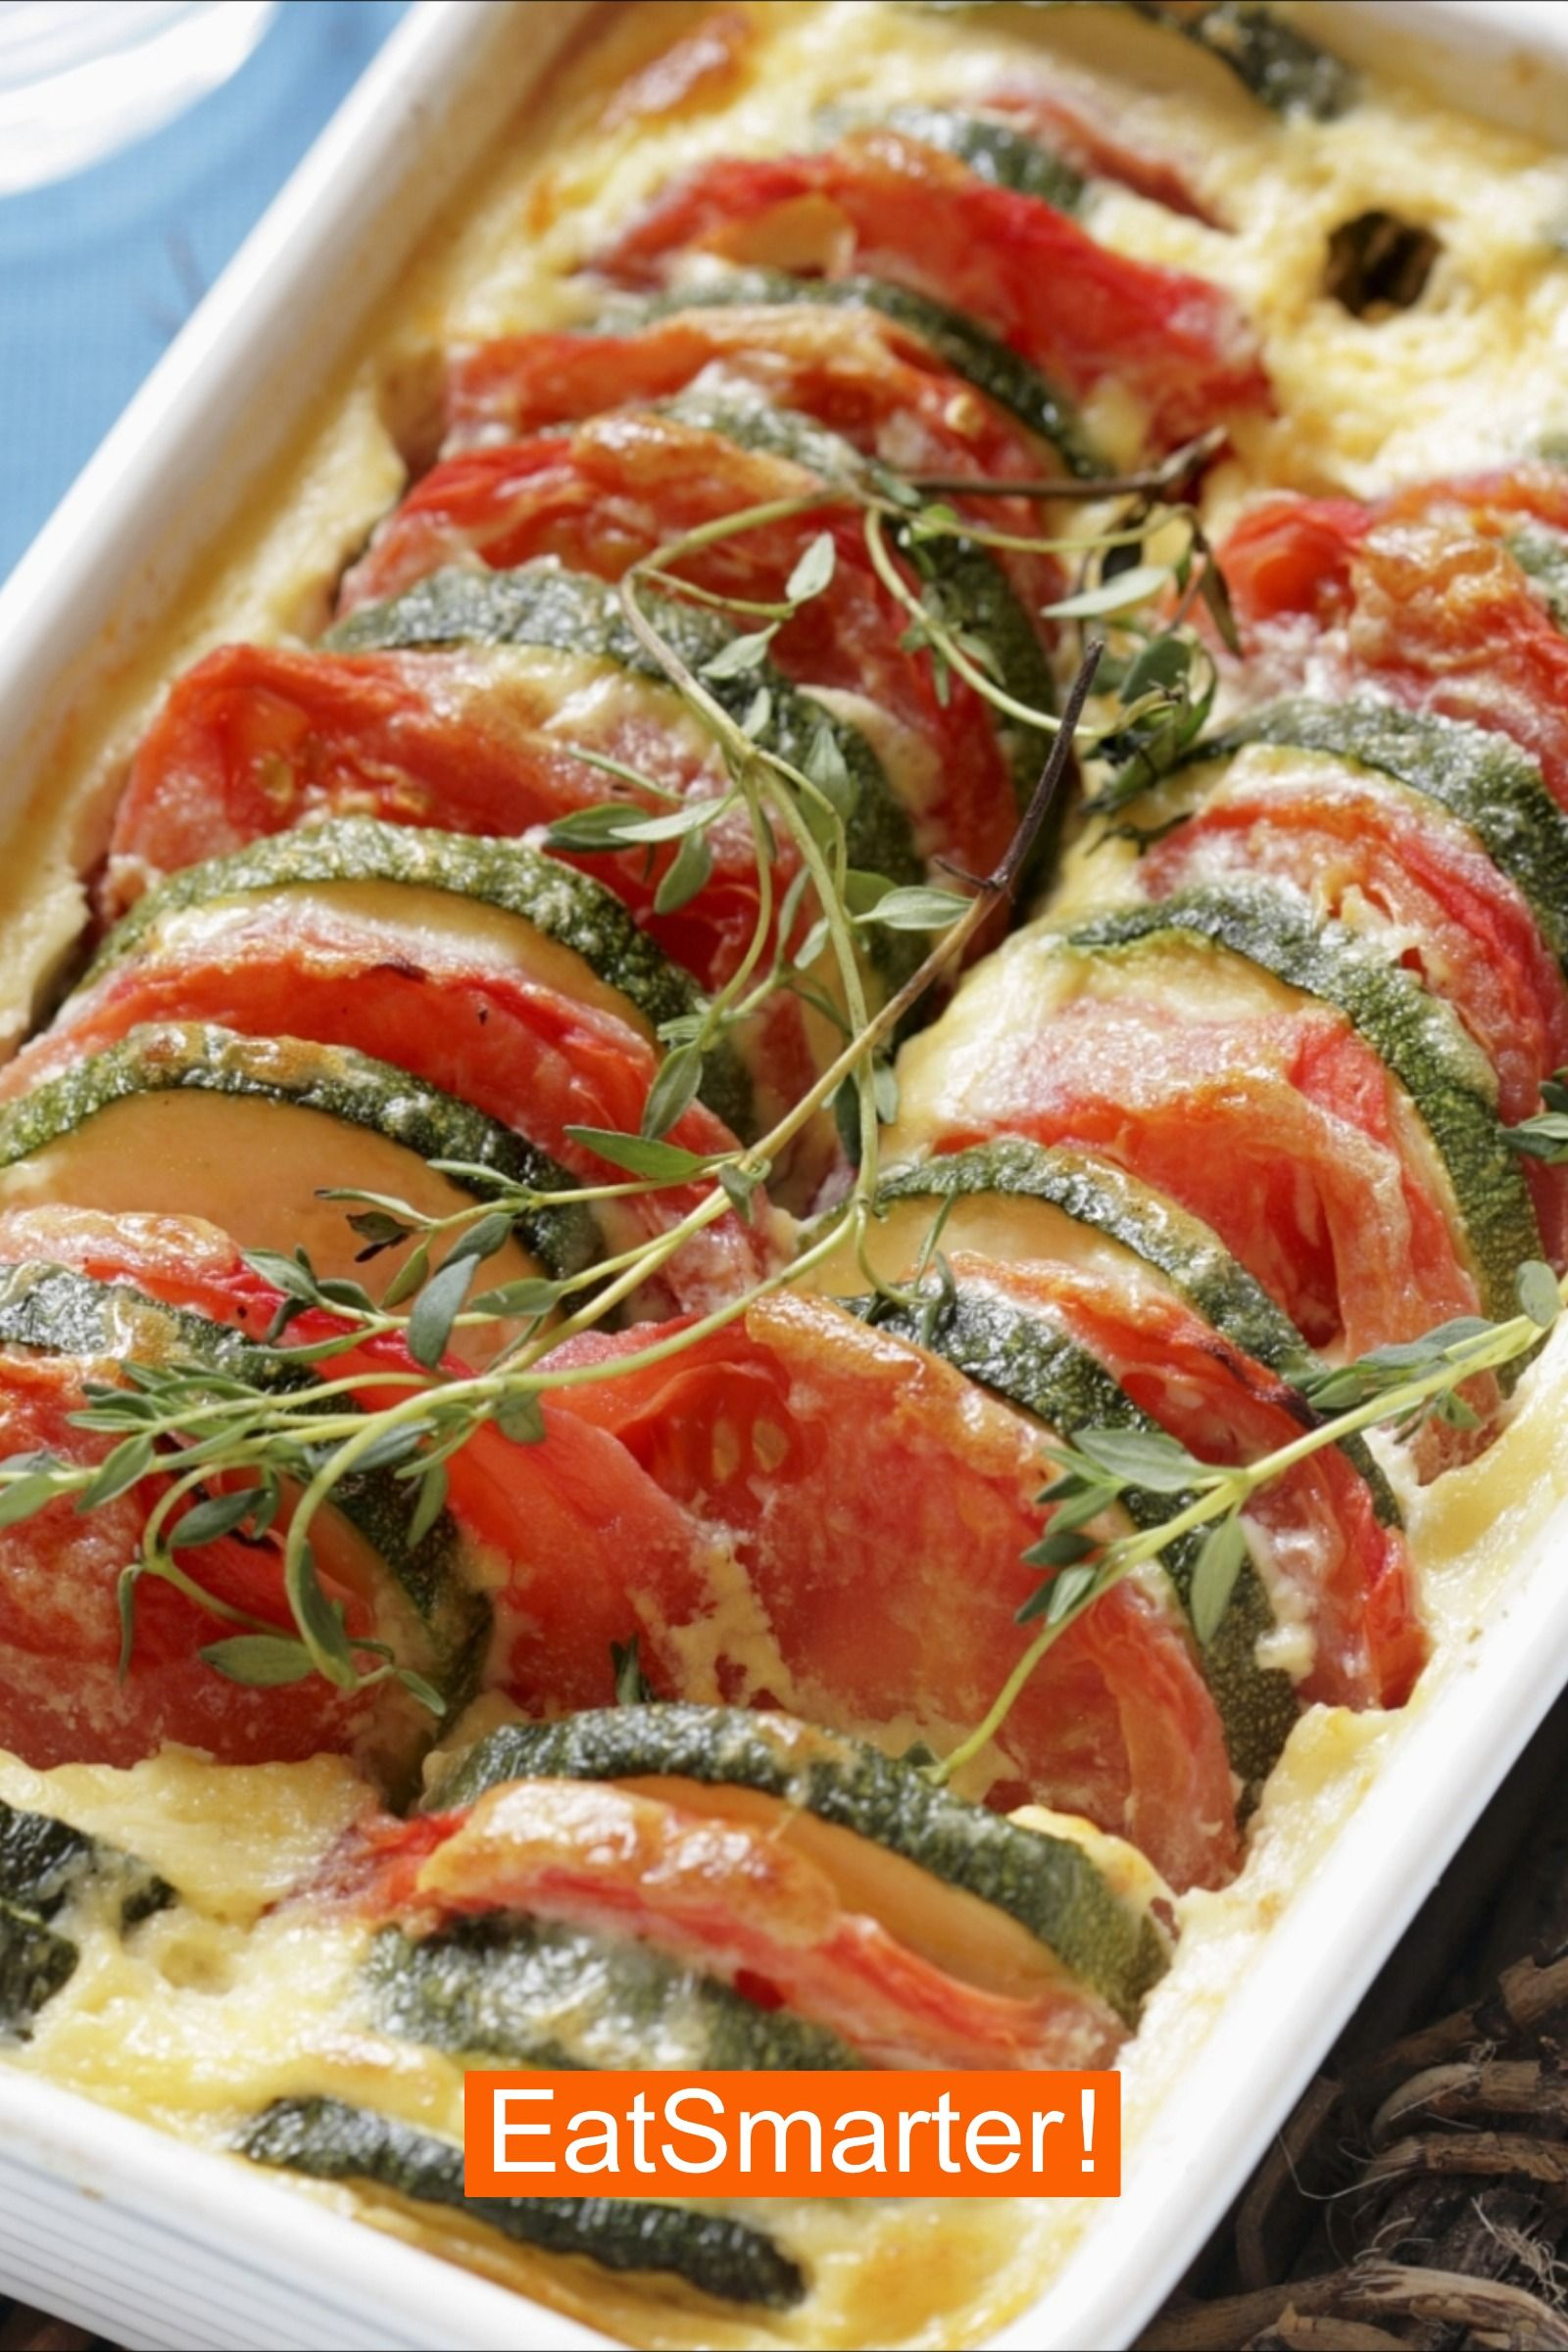 Photo of Carbohydrate-free recipes vegetarian? Tomato and zucchini bake EAT SMARTER